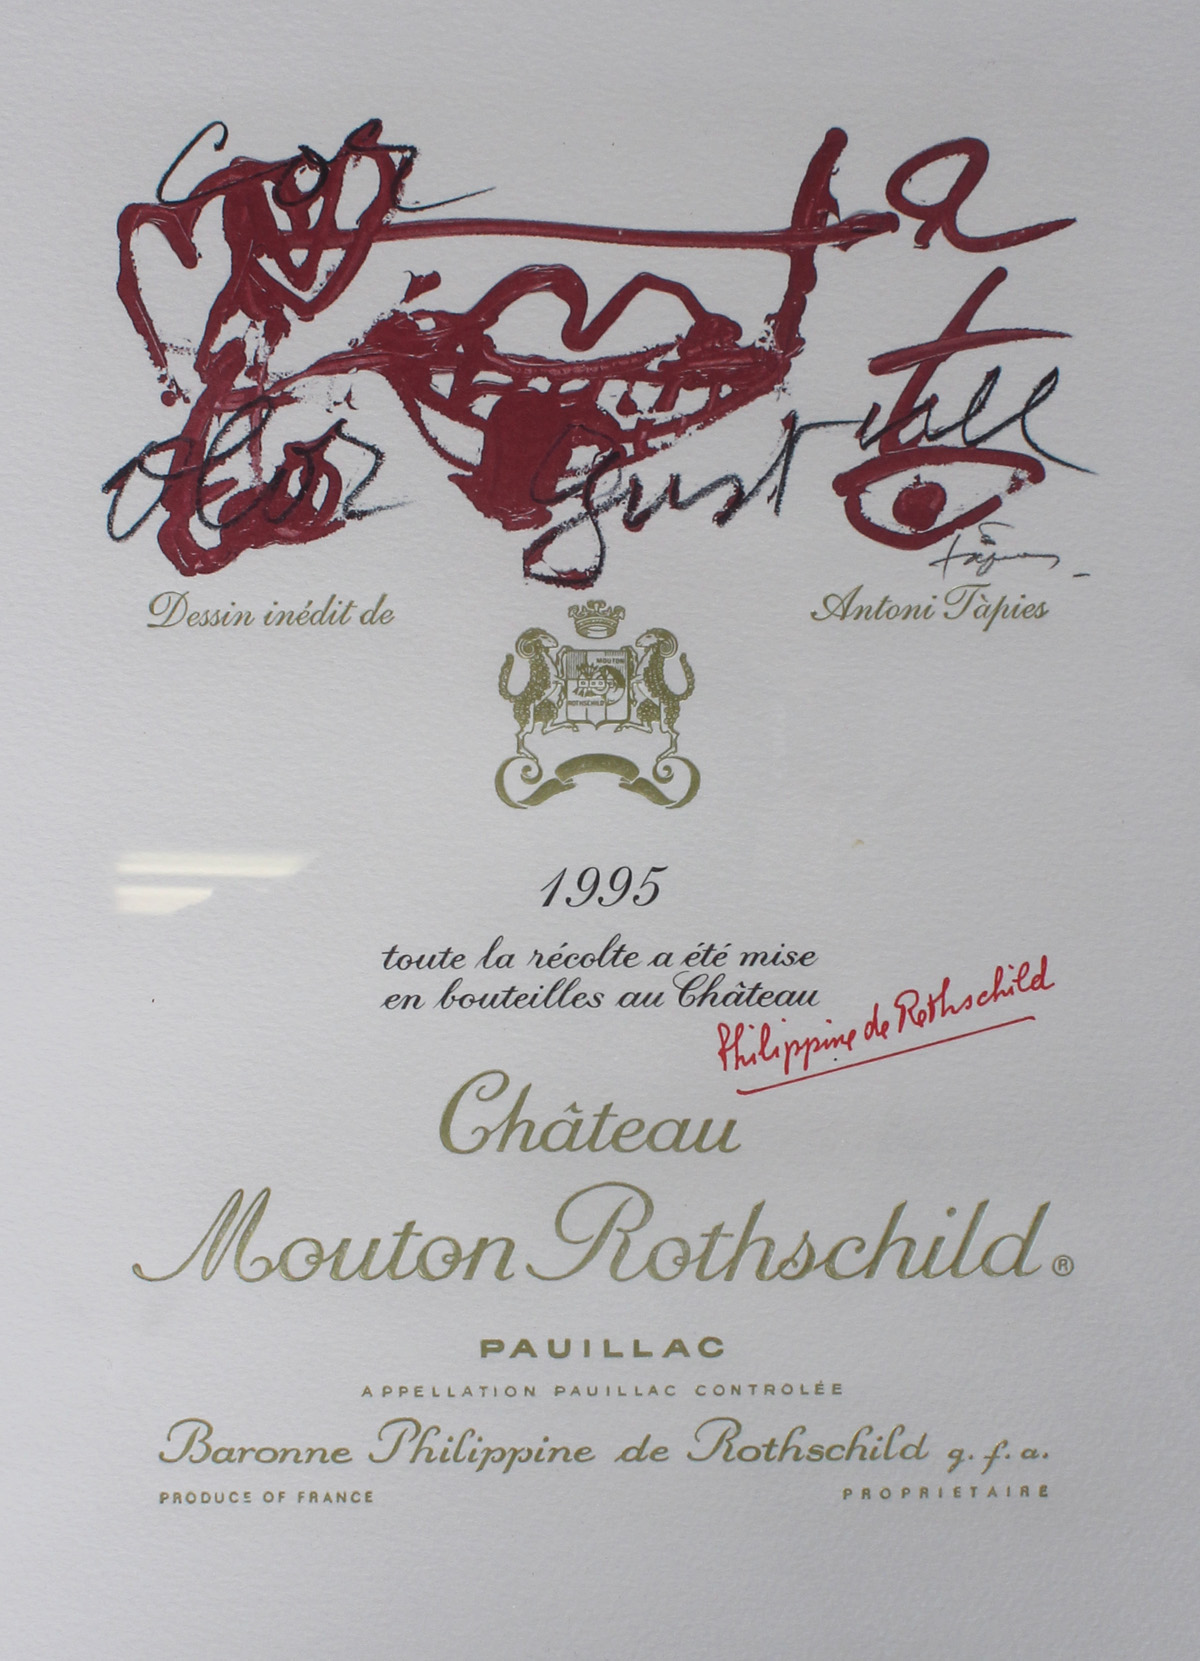 Three paintings with wine labels of Chateau Mouton Rothschild